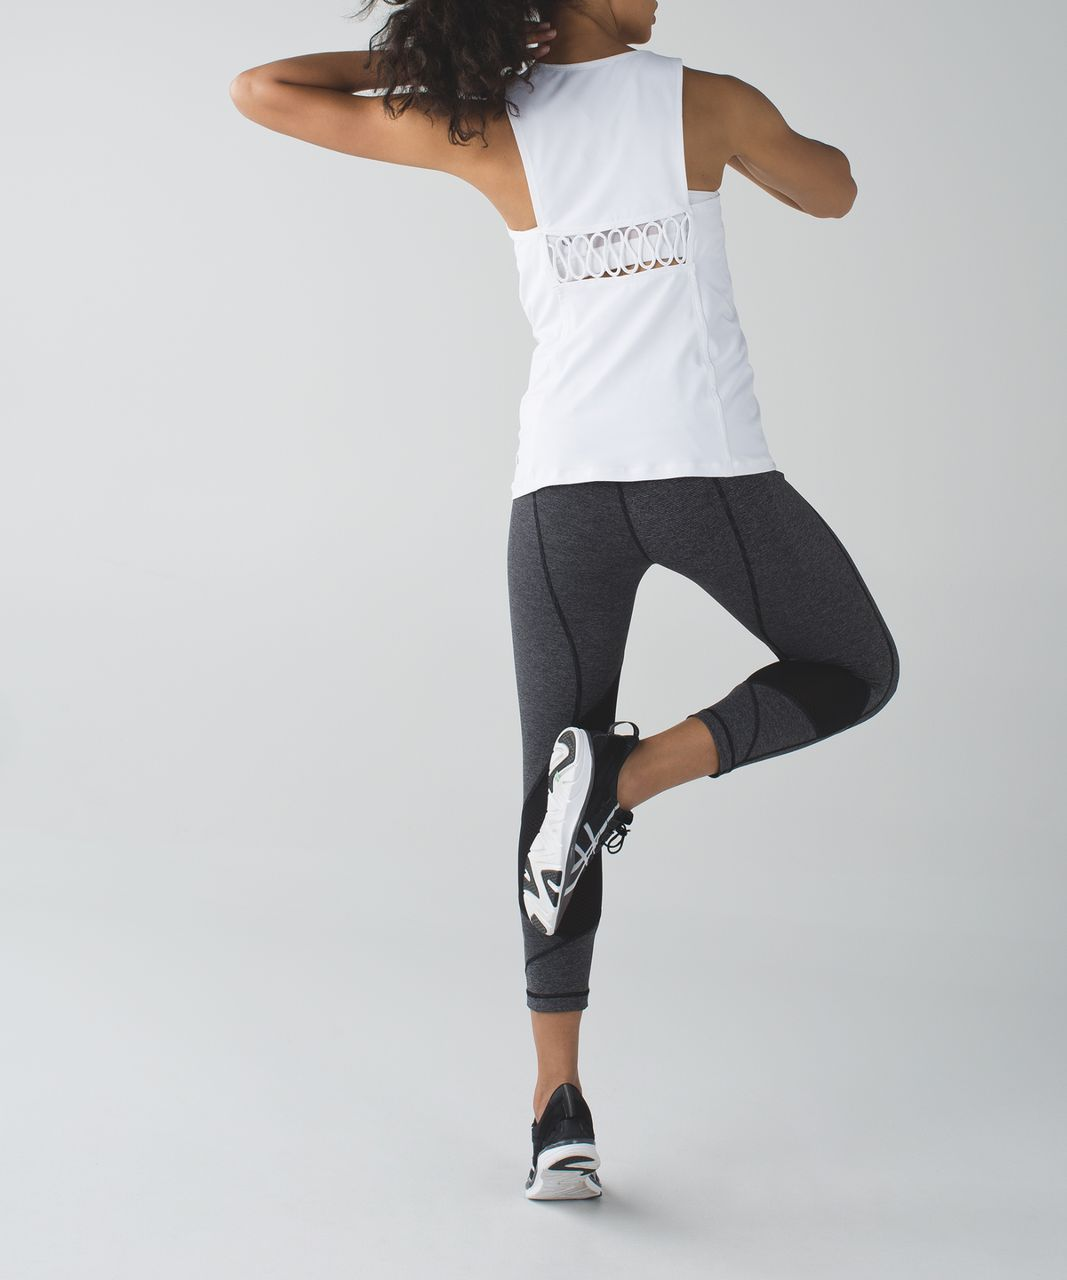 Lululemon Pace Rival Crop - Wee Stripe Black Heathered Black / Exploded So Fly Butterfly Angel Wing Black / Black